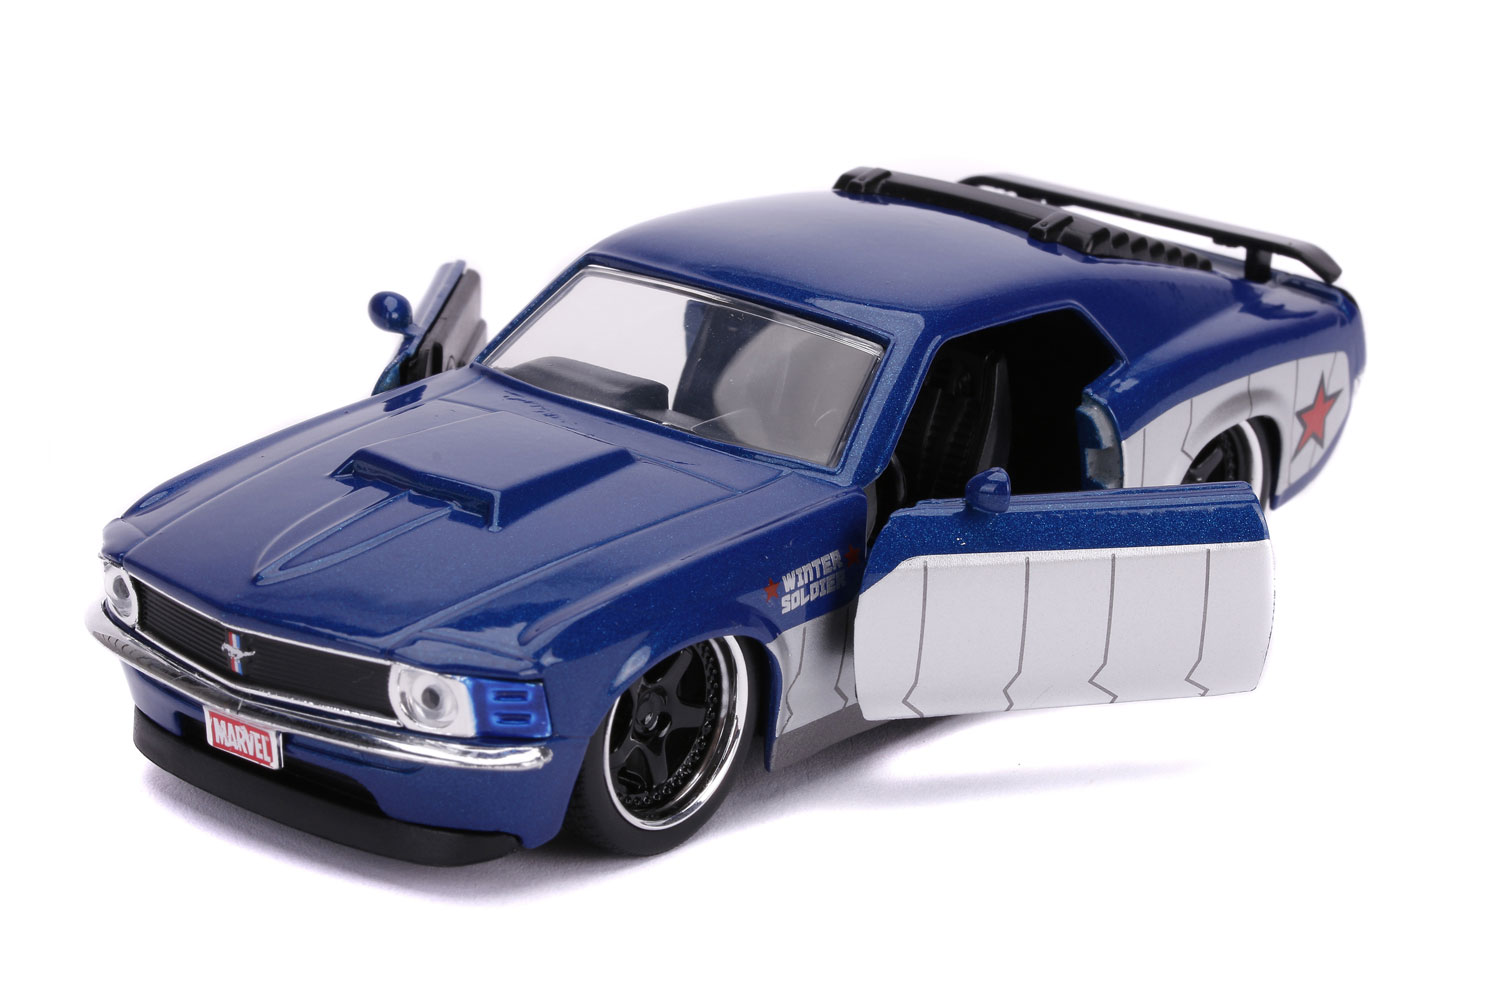 Marvel Vehicle: Winter Soldier 1970 Ford Mustang Boss  (1/32 scale) - Jada Toys, Inc